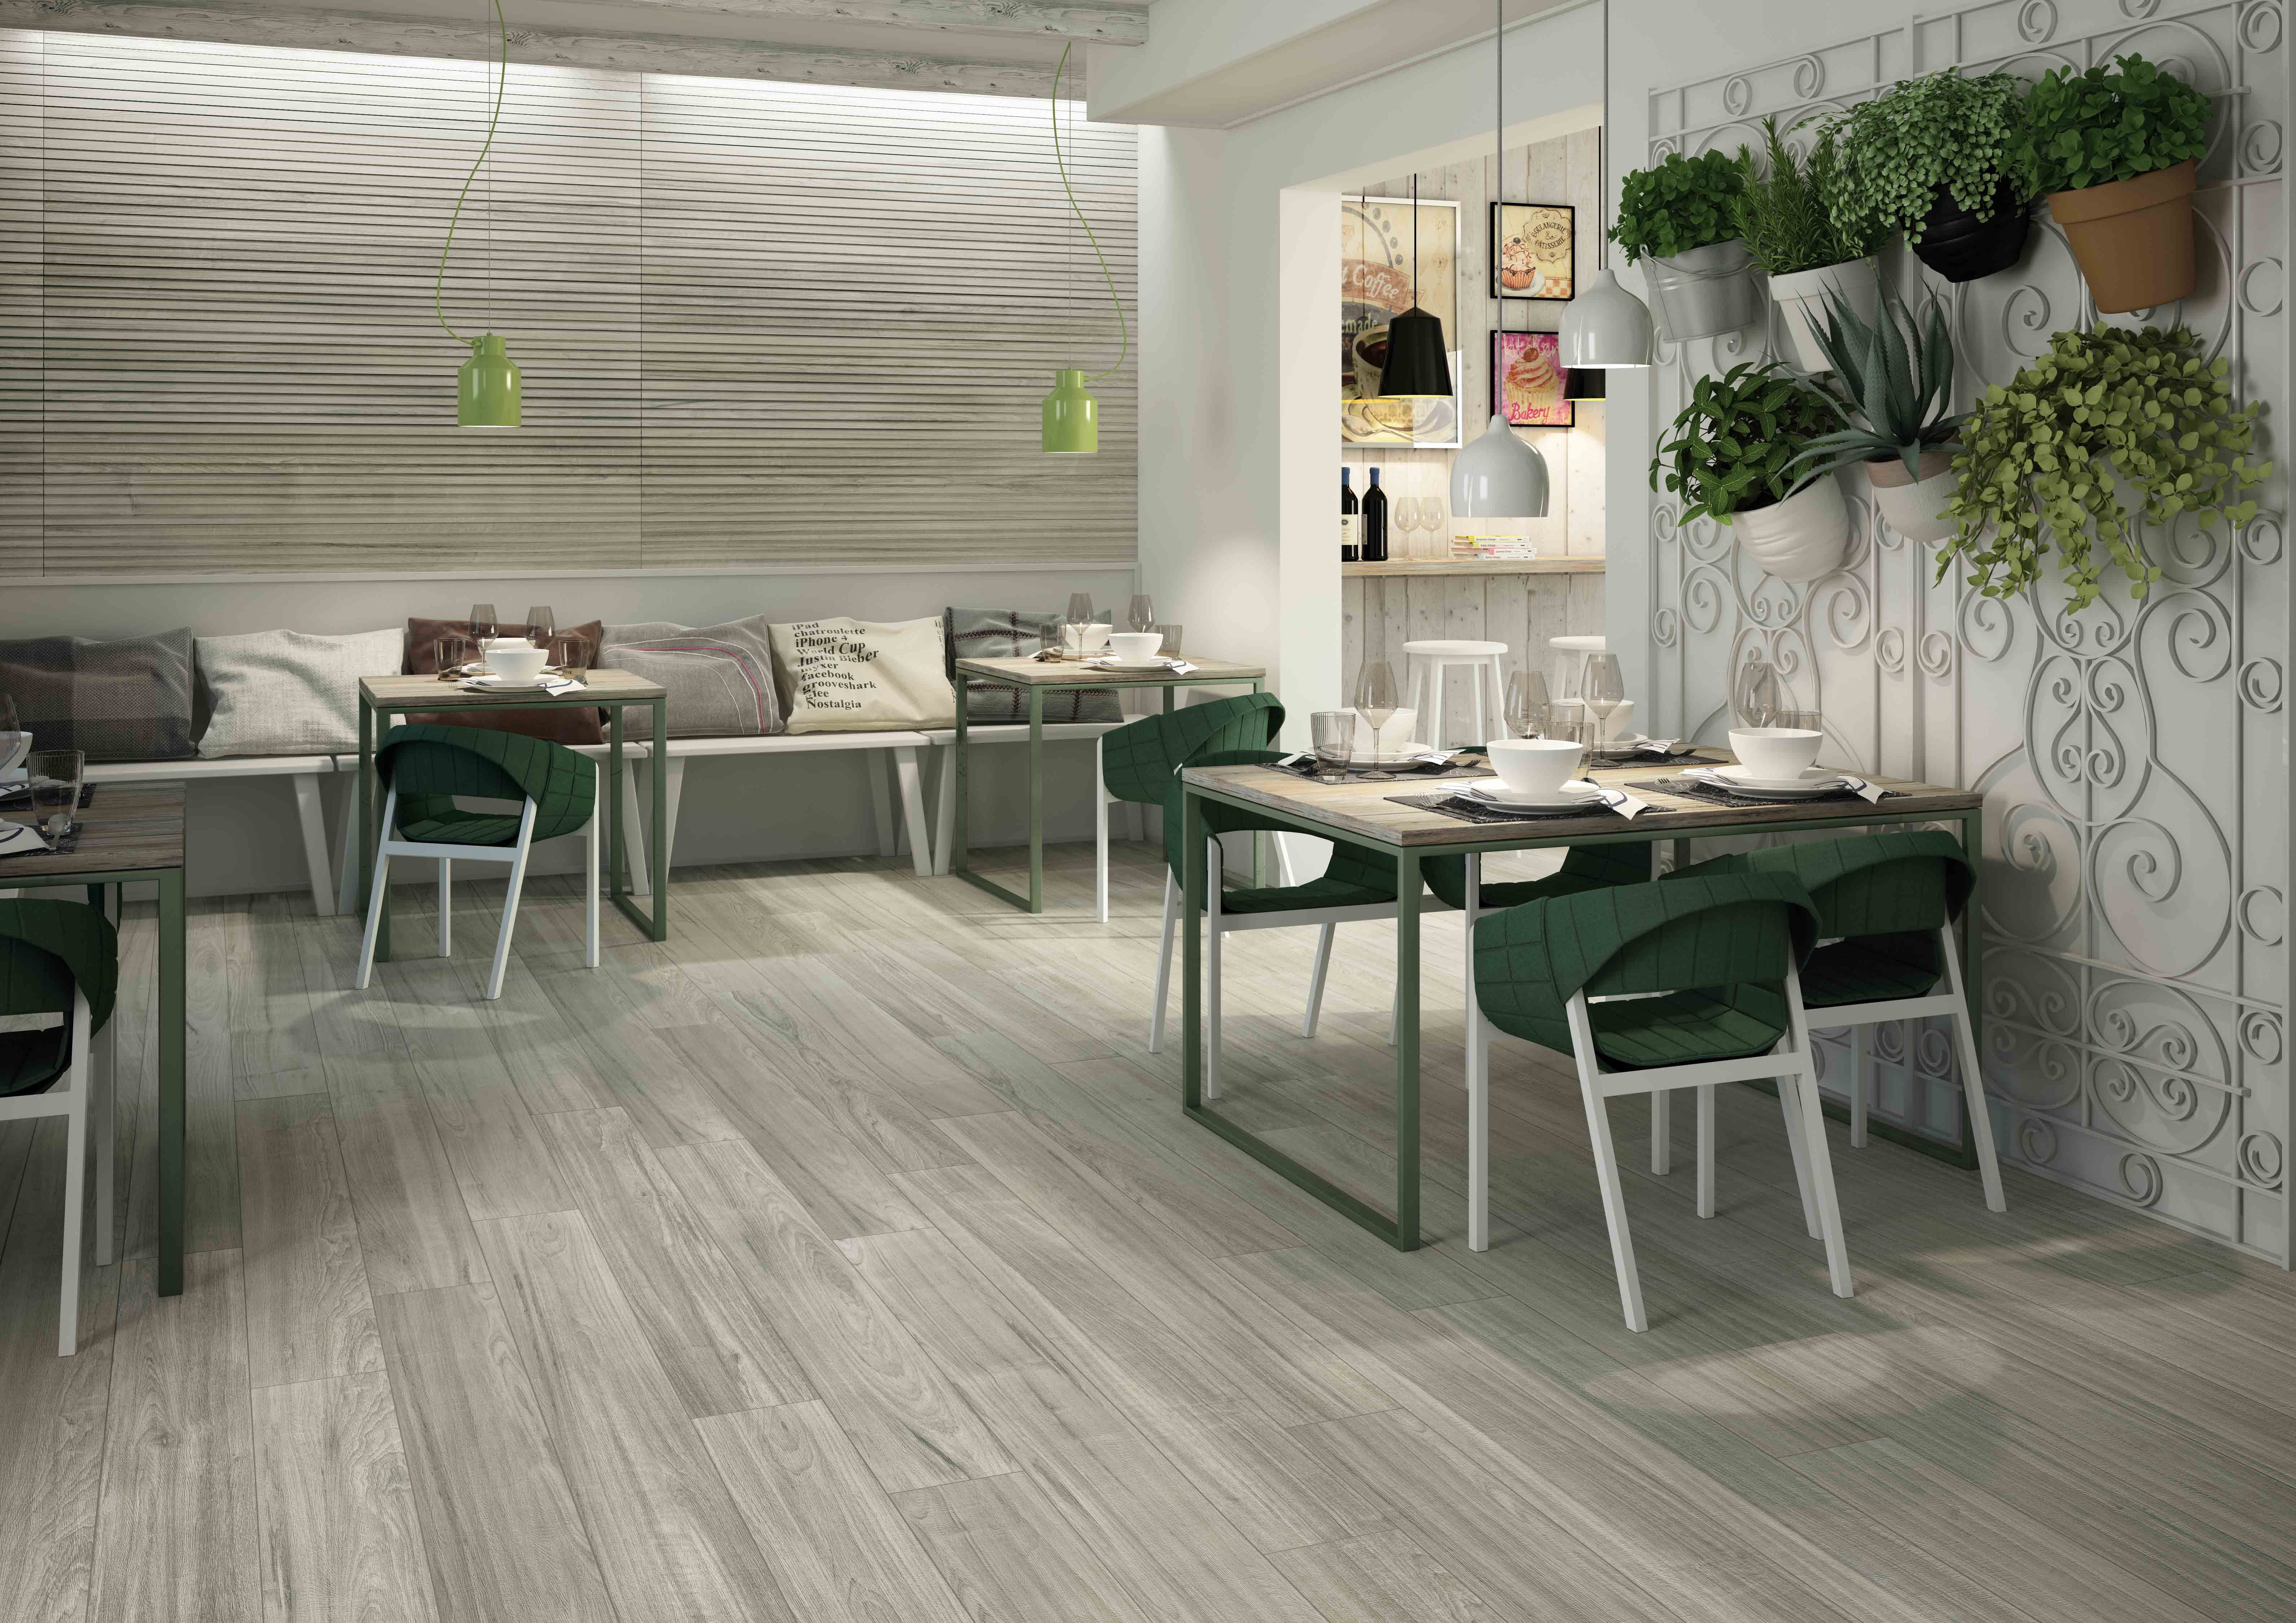 Soft by Ricchetti | Ceramic Planks | Outdoor furniture sets ...